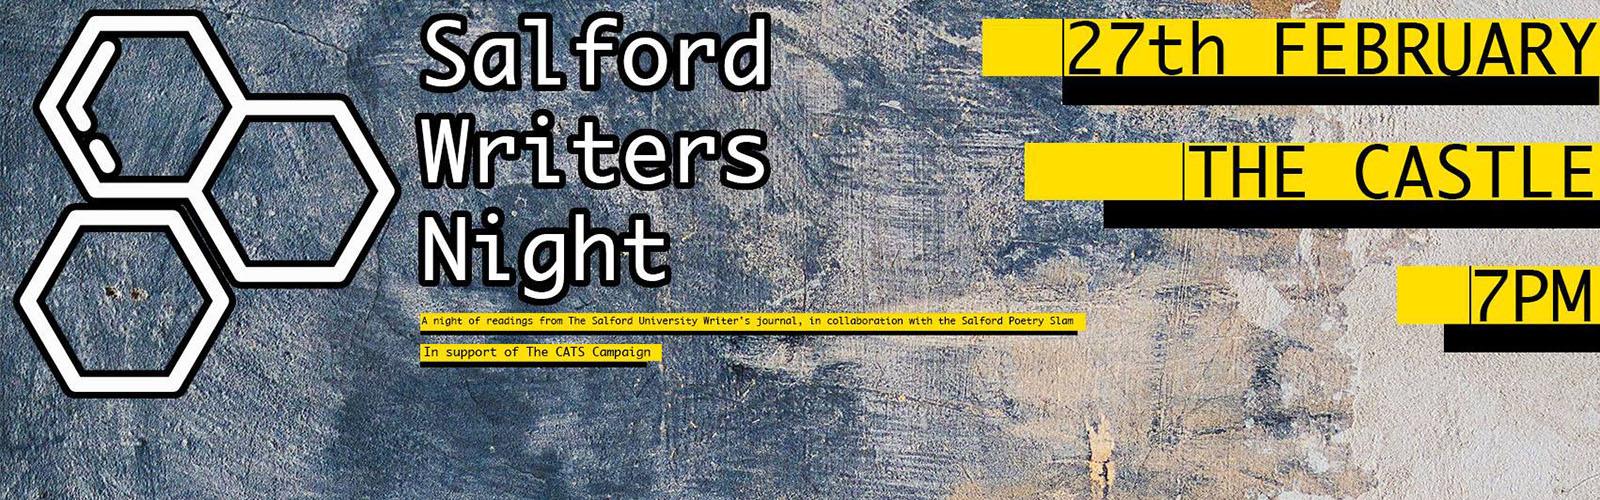 Salford Writers Night Poster